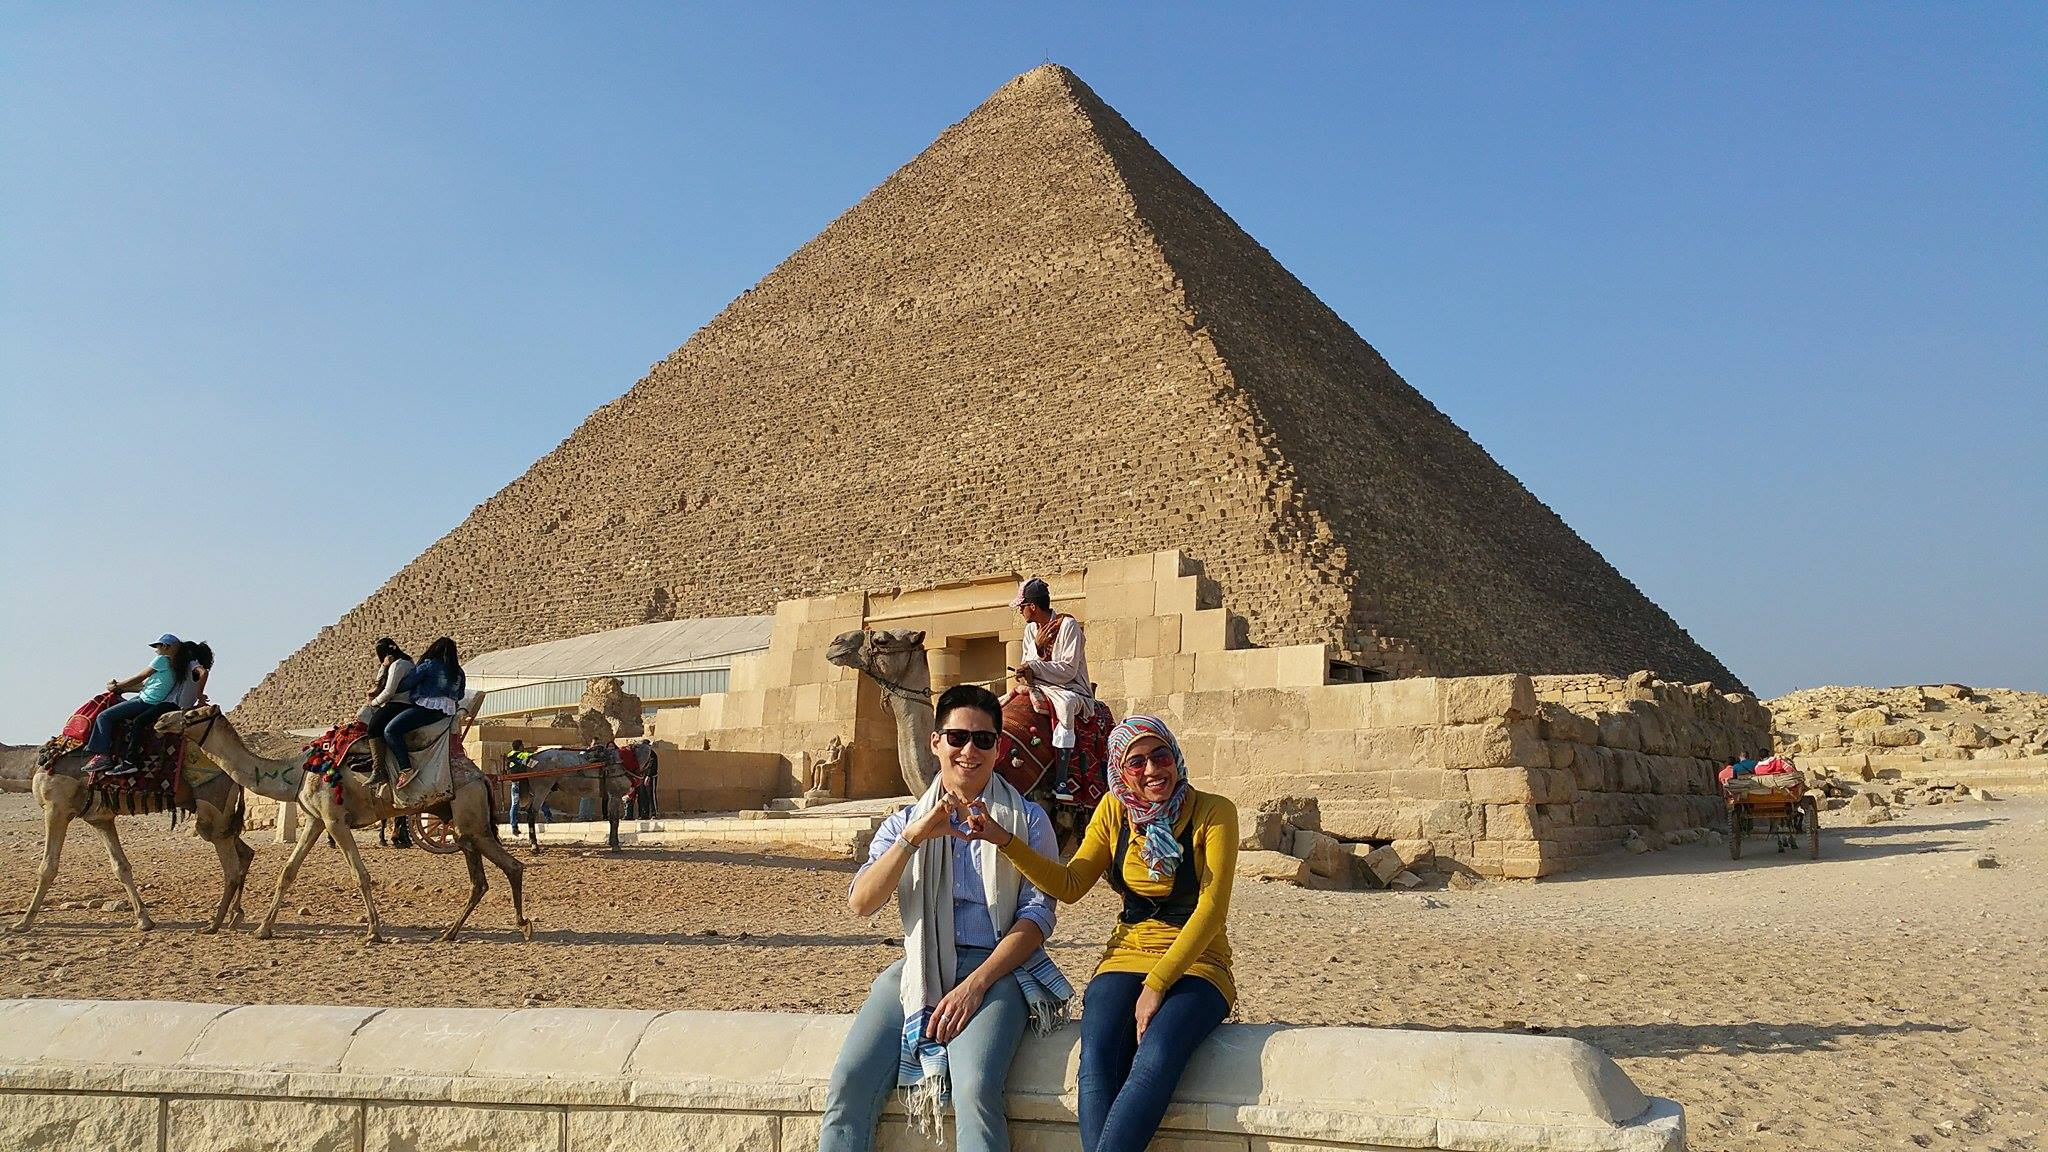 Greetings from The Pyramids